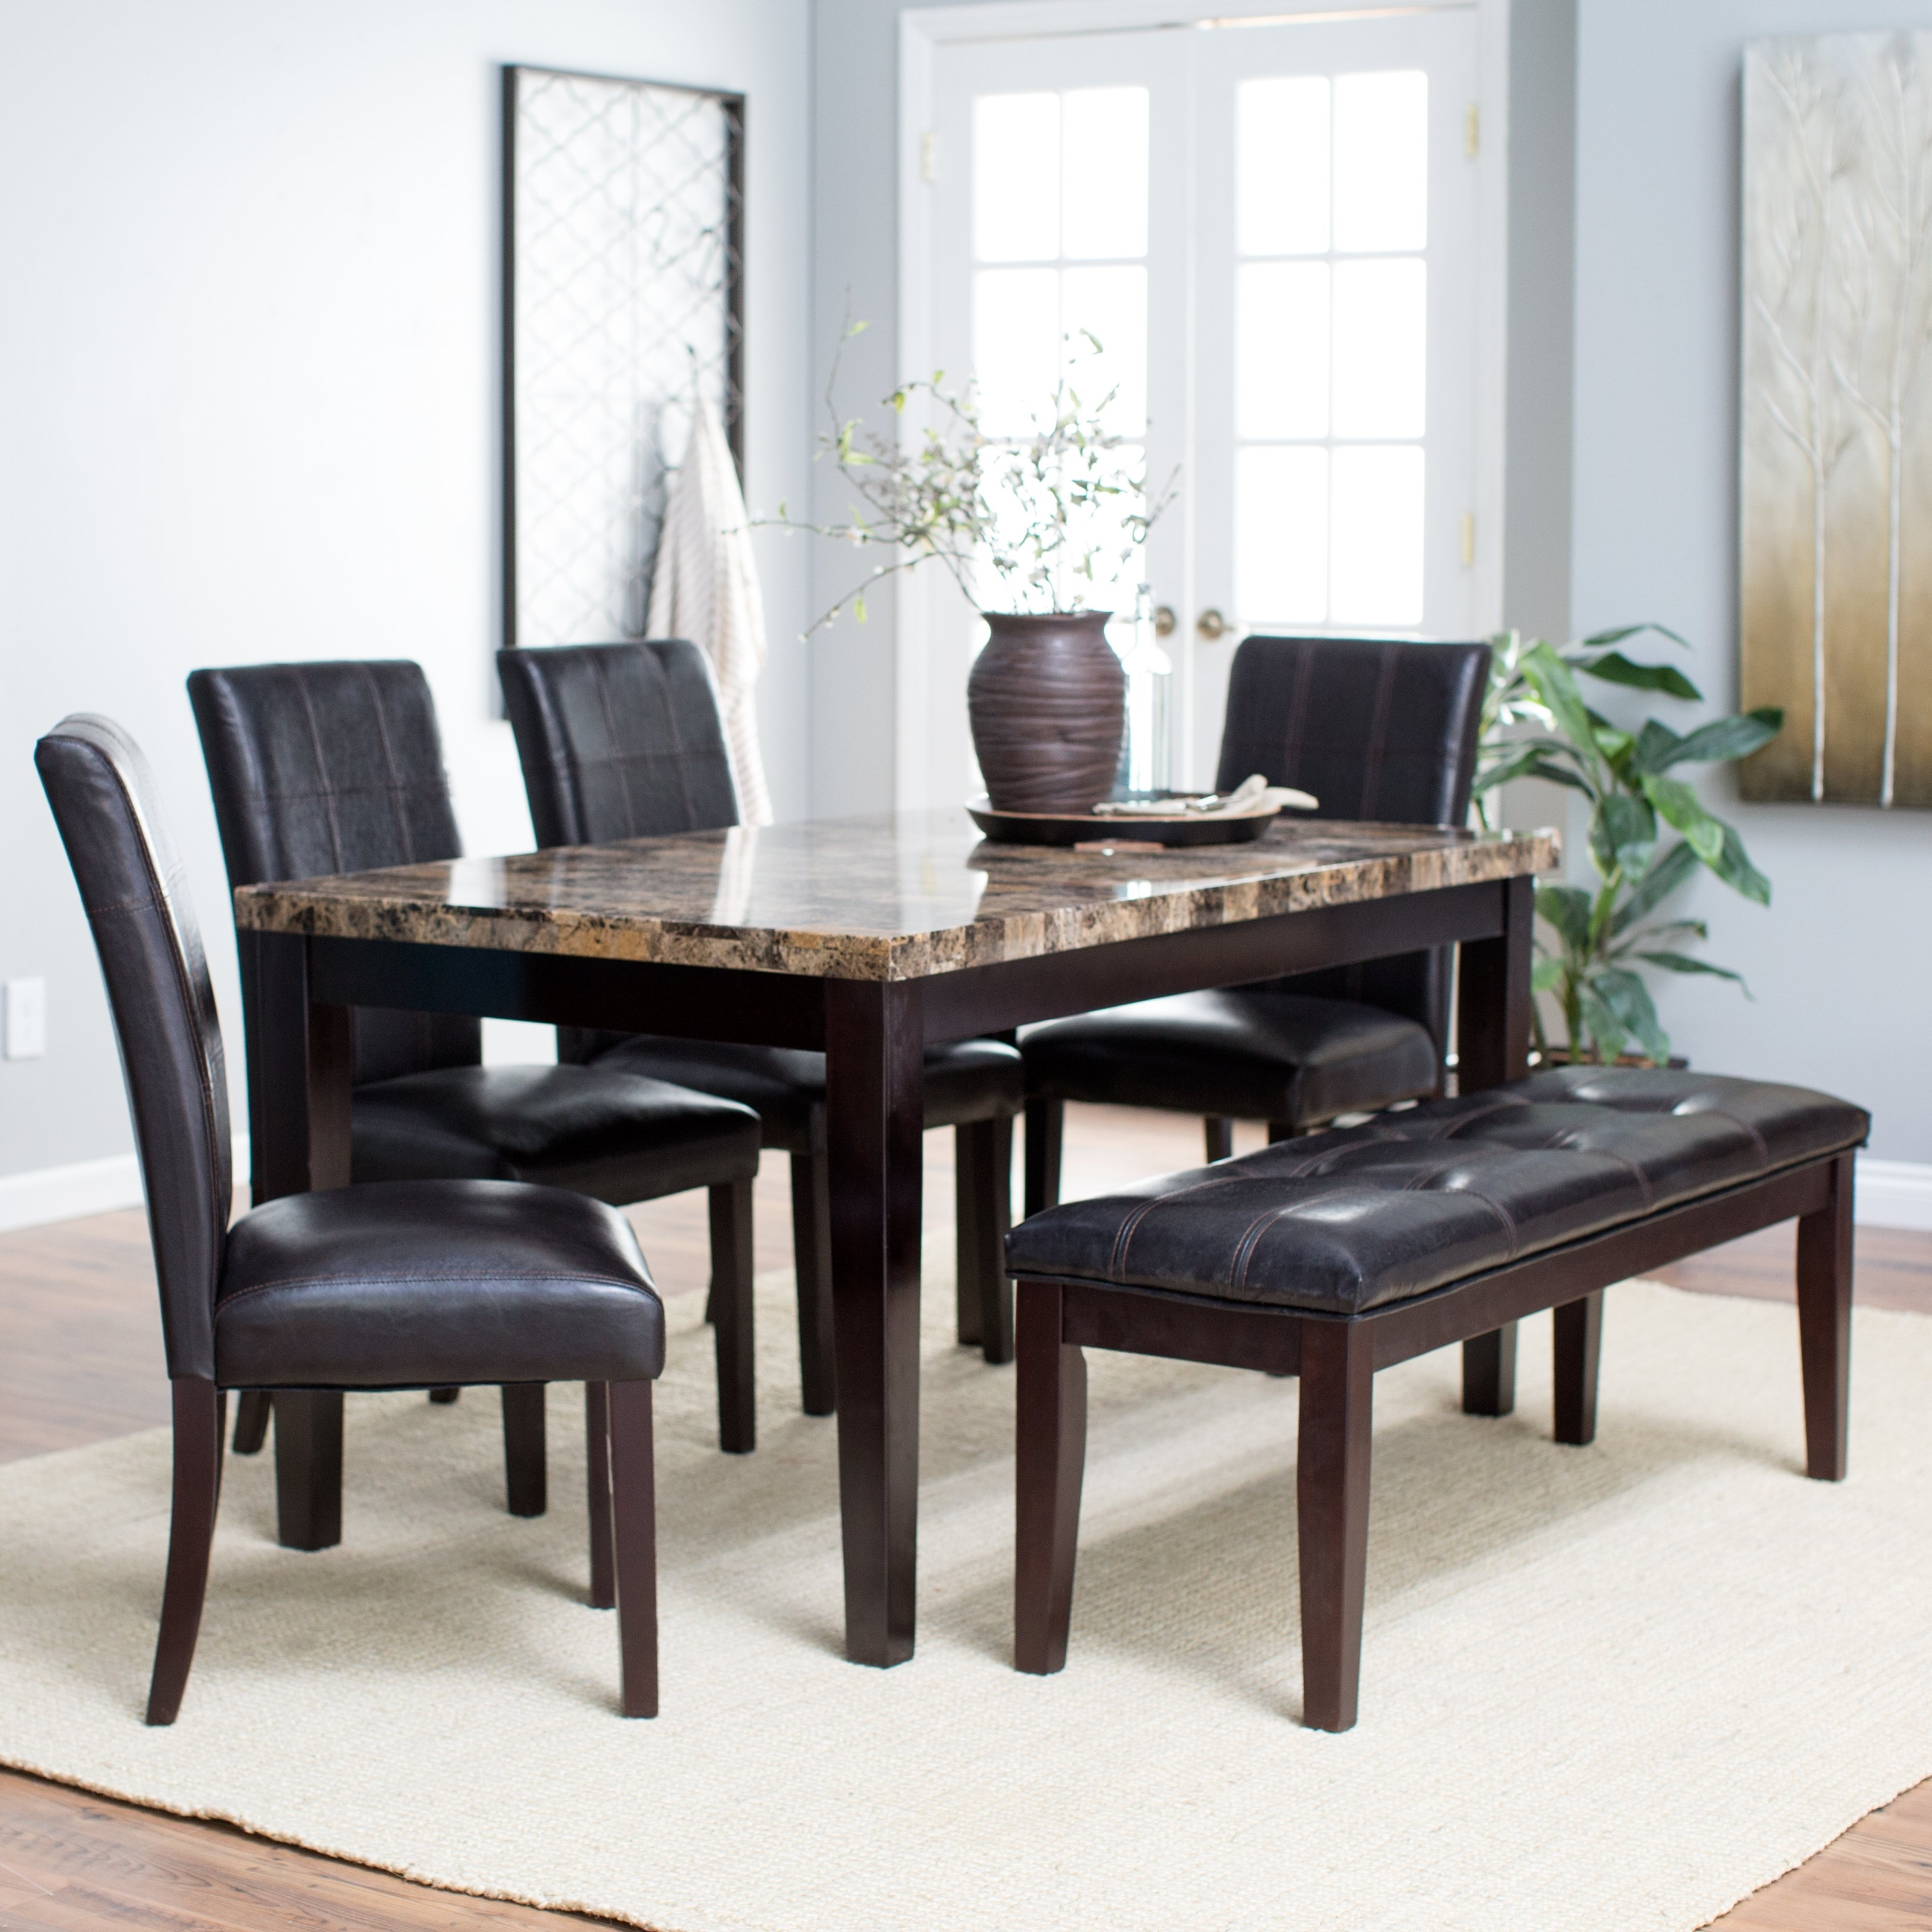 Types Of Dining Table Sets – Pickndecor In Best And Newest Dining Tables Sets (View 22 of 25)